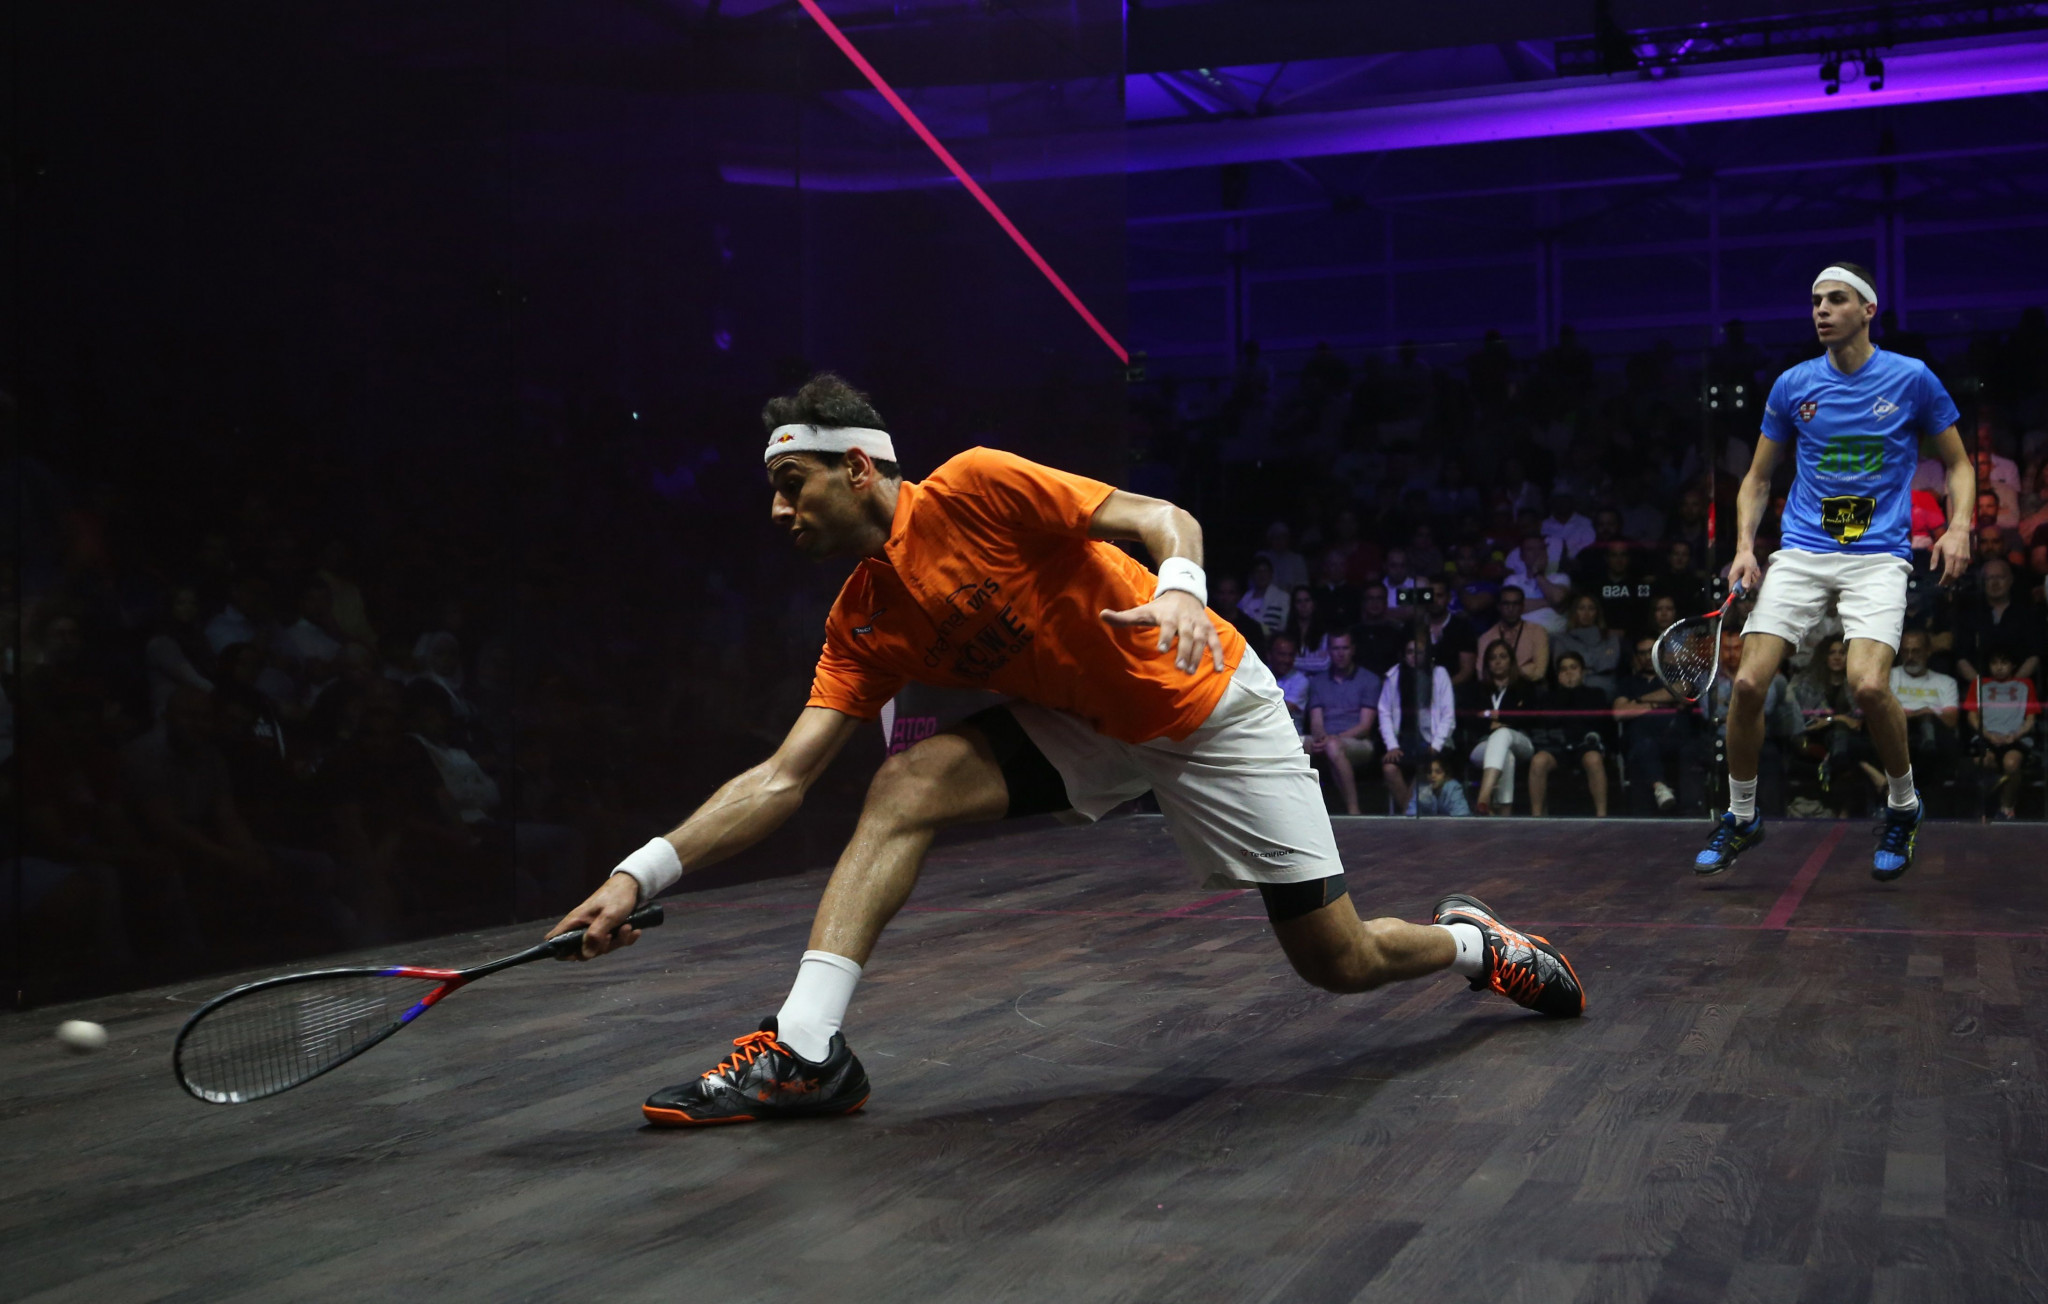 Top seed ElShorbagy wins opening match of Grasshopper Cup